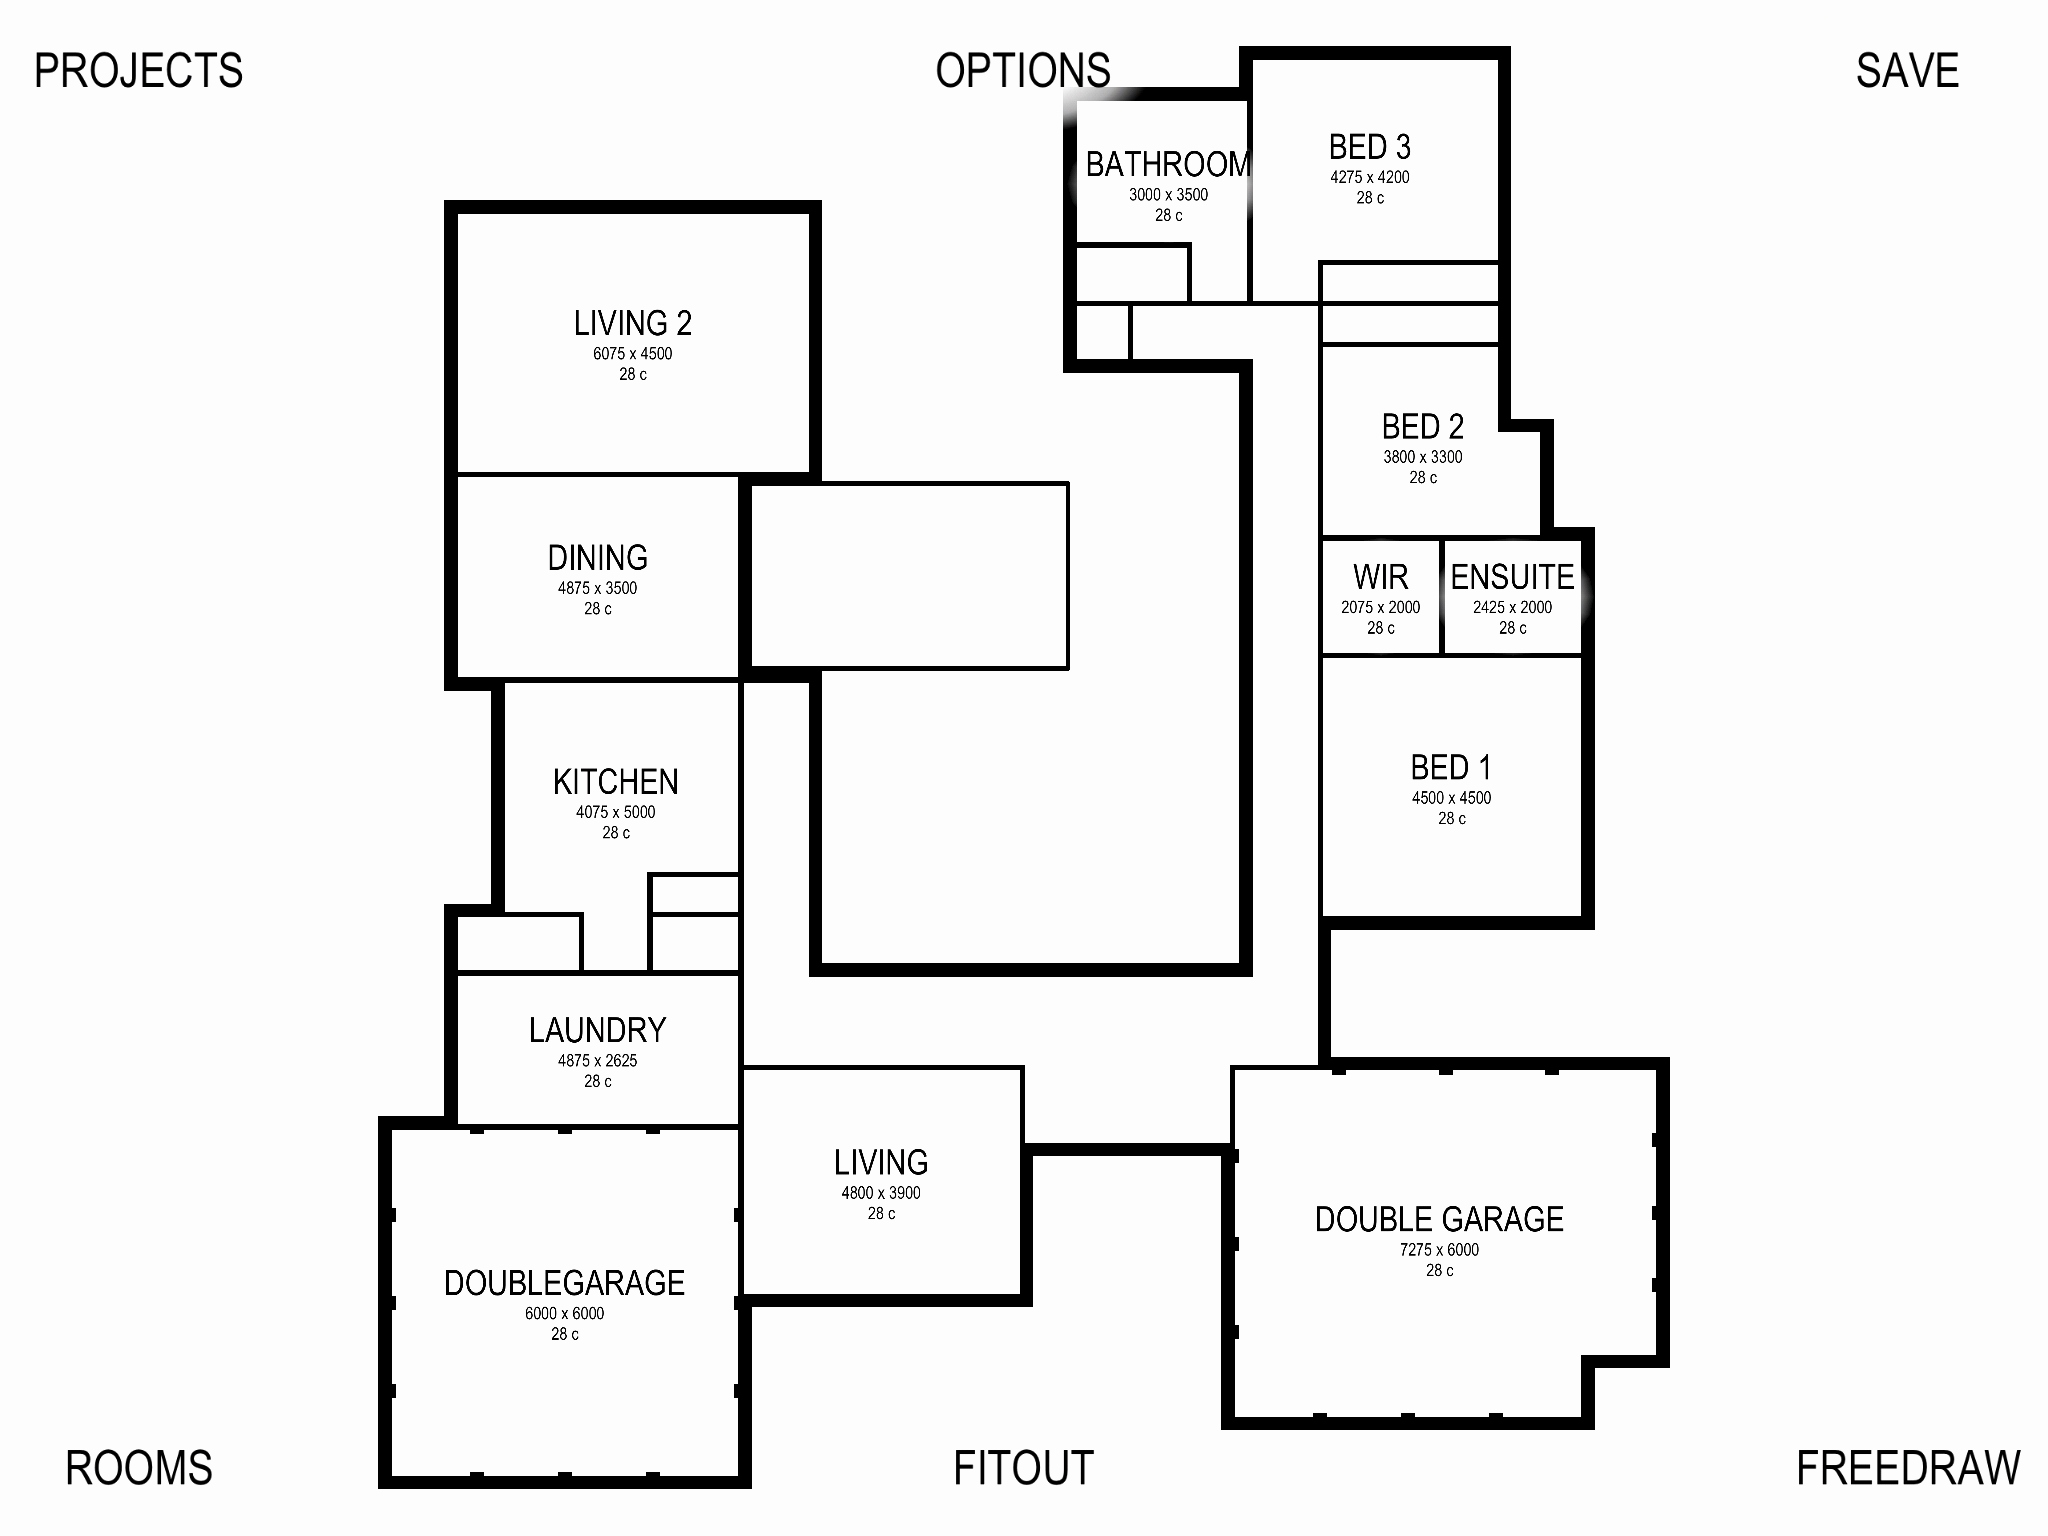 Floor plan drawing at free for personal - Floor plan drawing apps ...